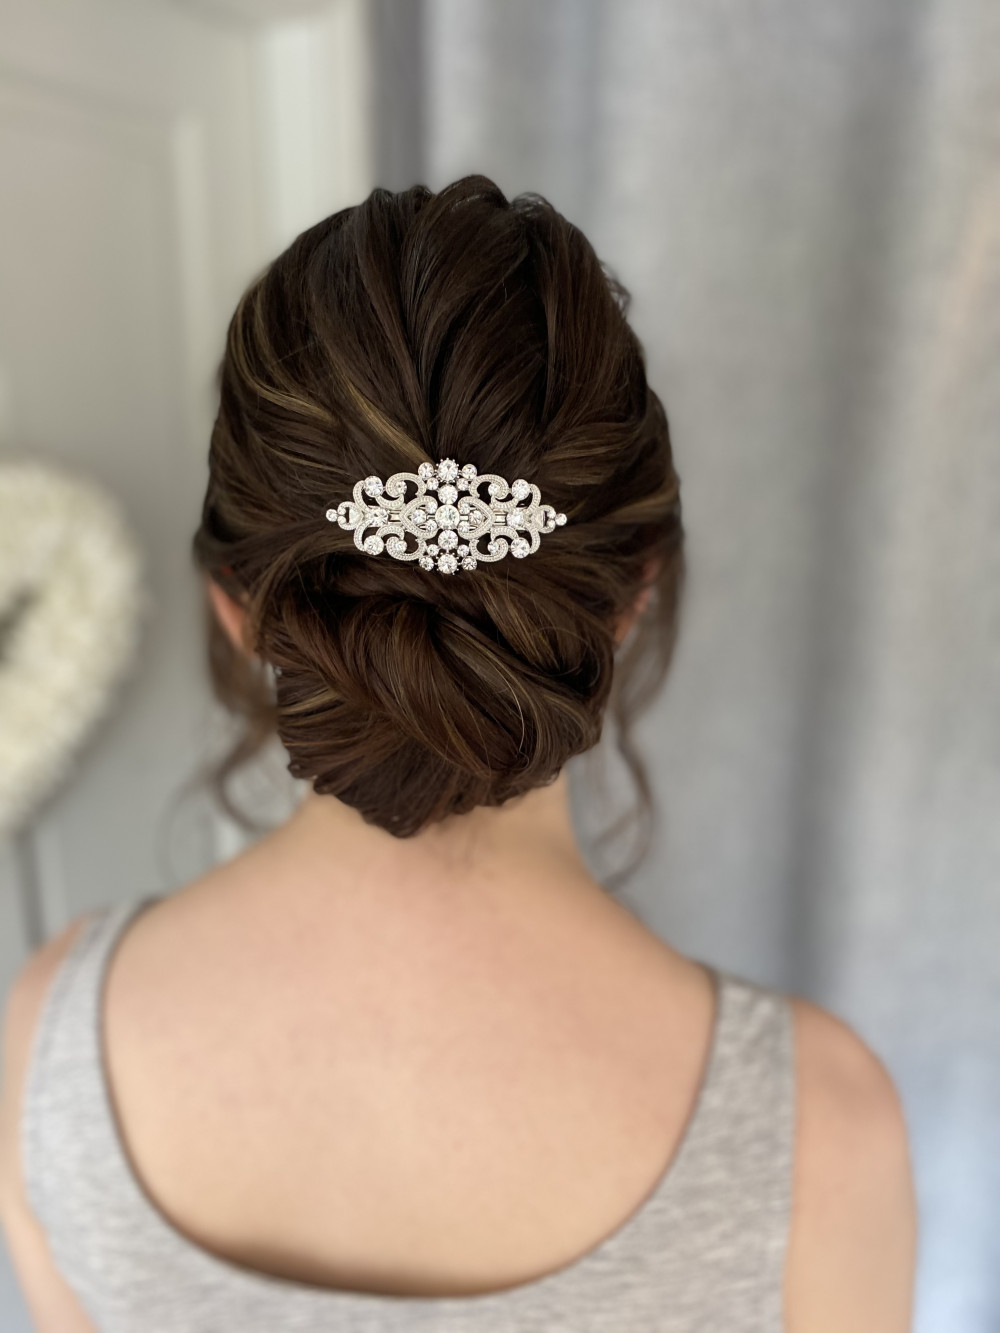 - Make Me Bridal Artist: Bridal hair by Michelle Jewess. Photography by: Michelle. #classic